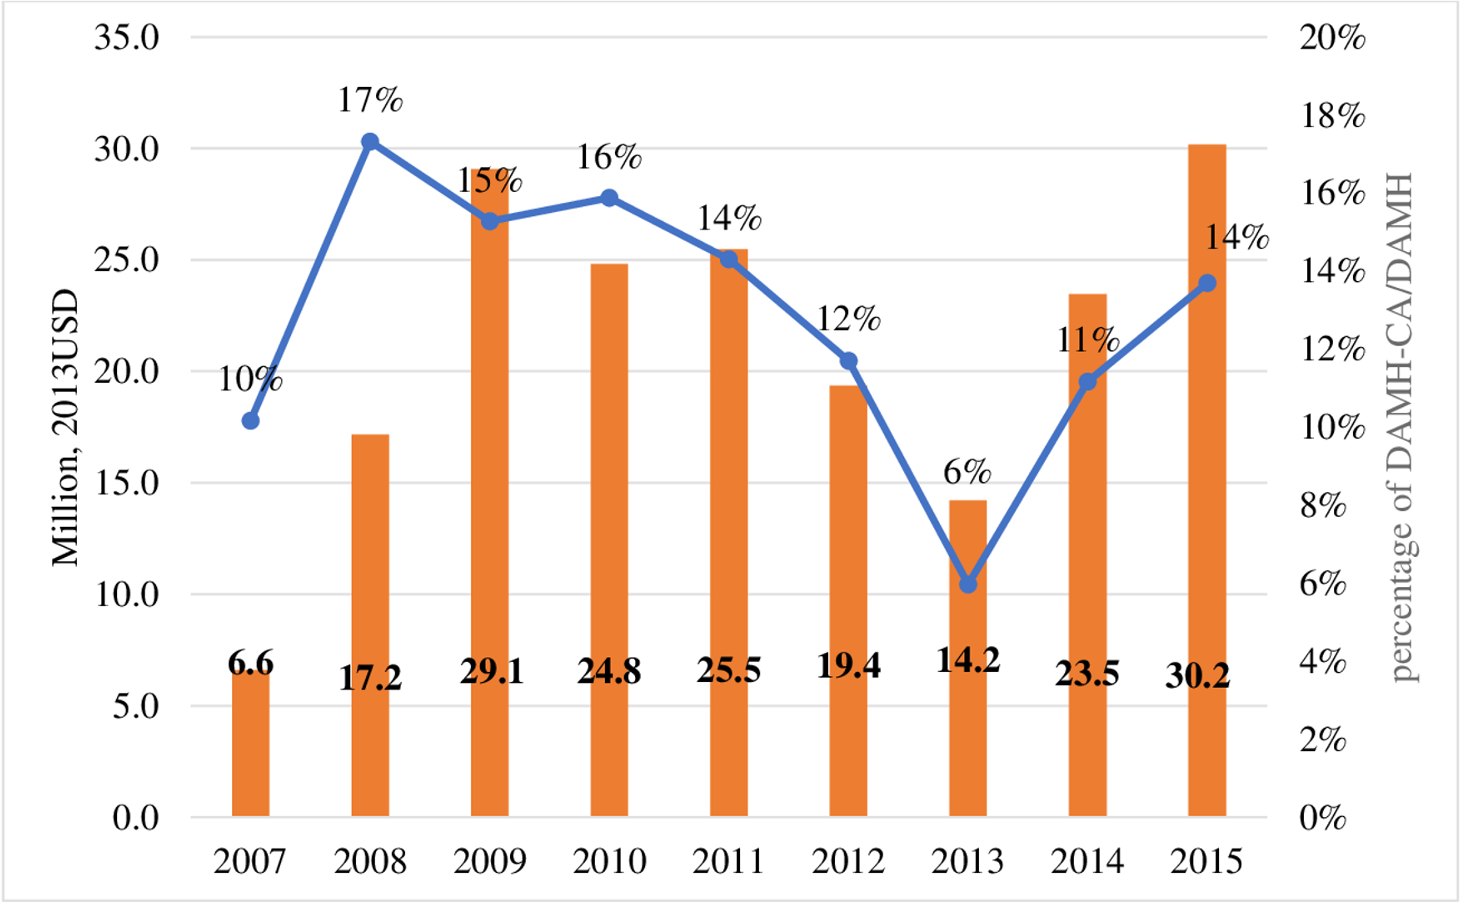 DAMH_CA by year (million, 2013 USD) and DAMH_CA disbursements as percentages of total DAMH, lower-bound estimates.